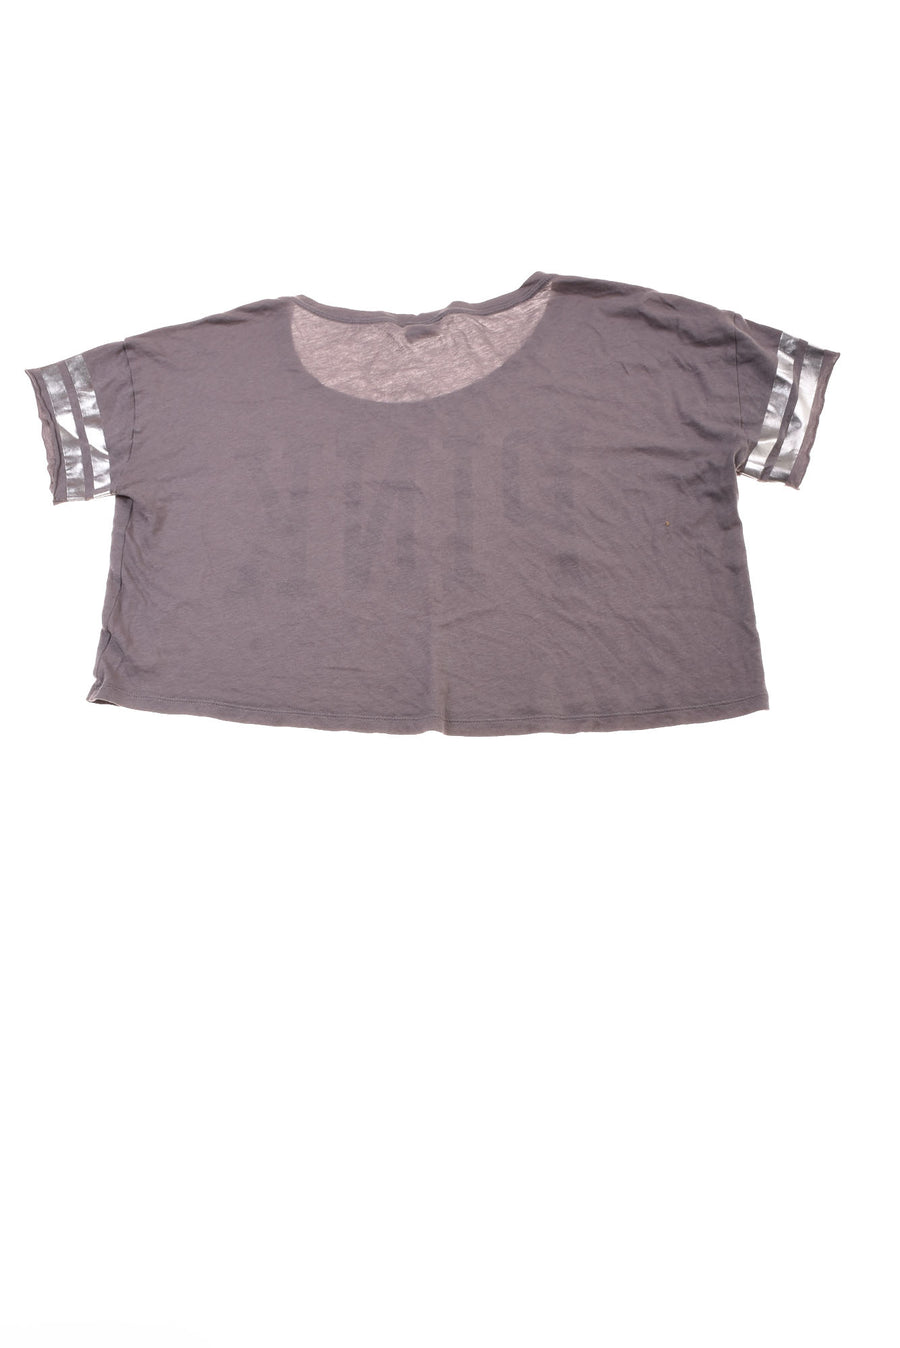 USED Pink By Victoria Secret Women's Top X-Small Gray & Silver Tone